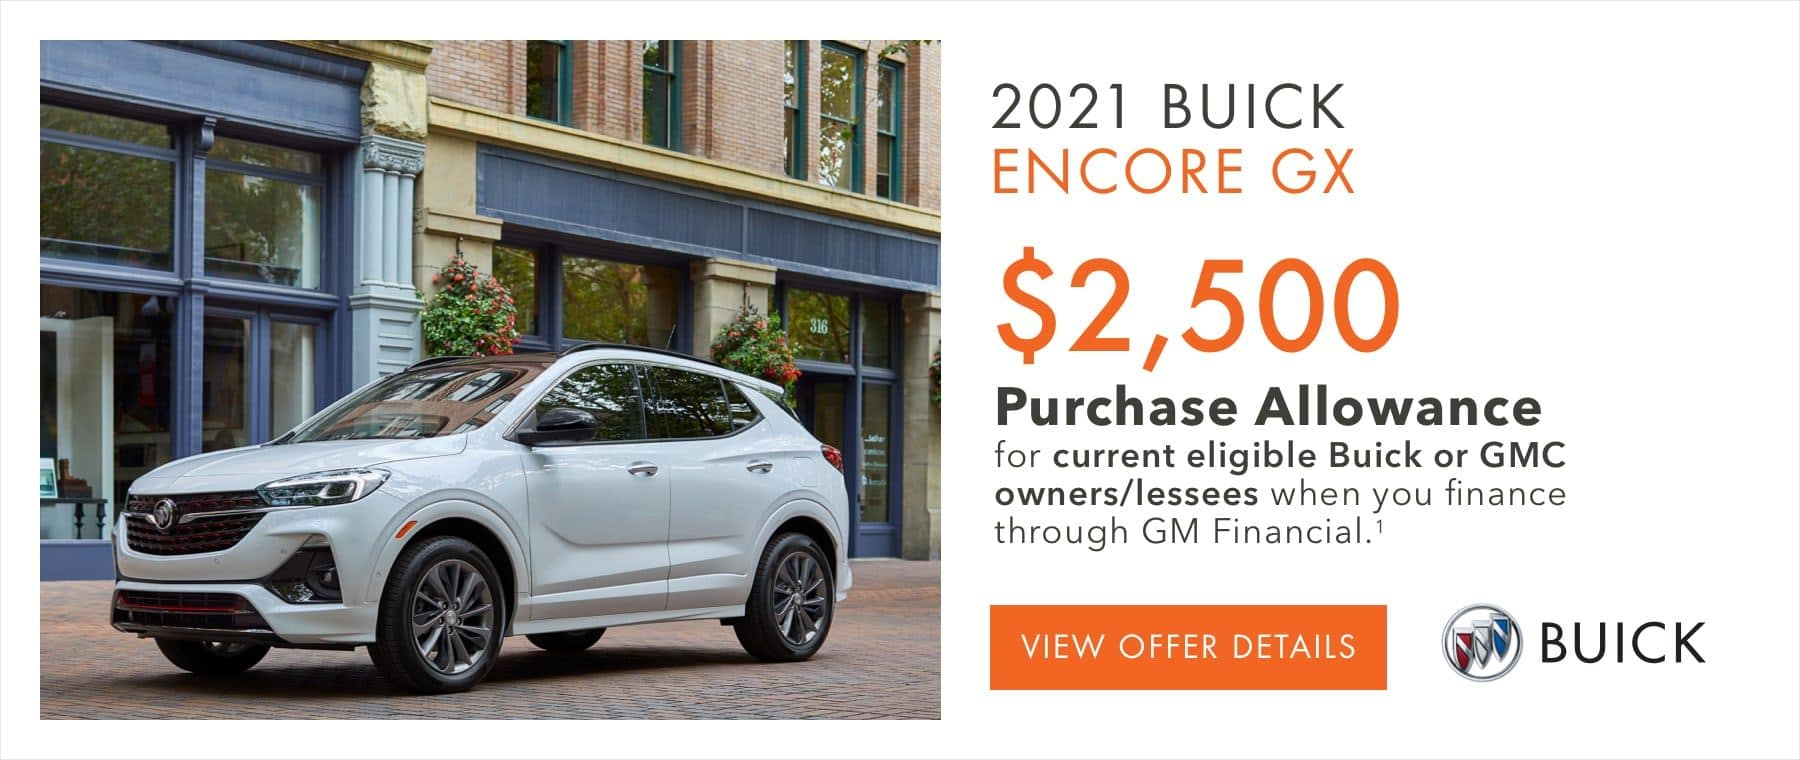 $2,500 Purchase Allowance for current eligible Buick or GMC owners/lessees when you finance through GM Financial.1